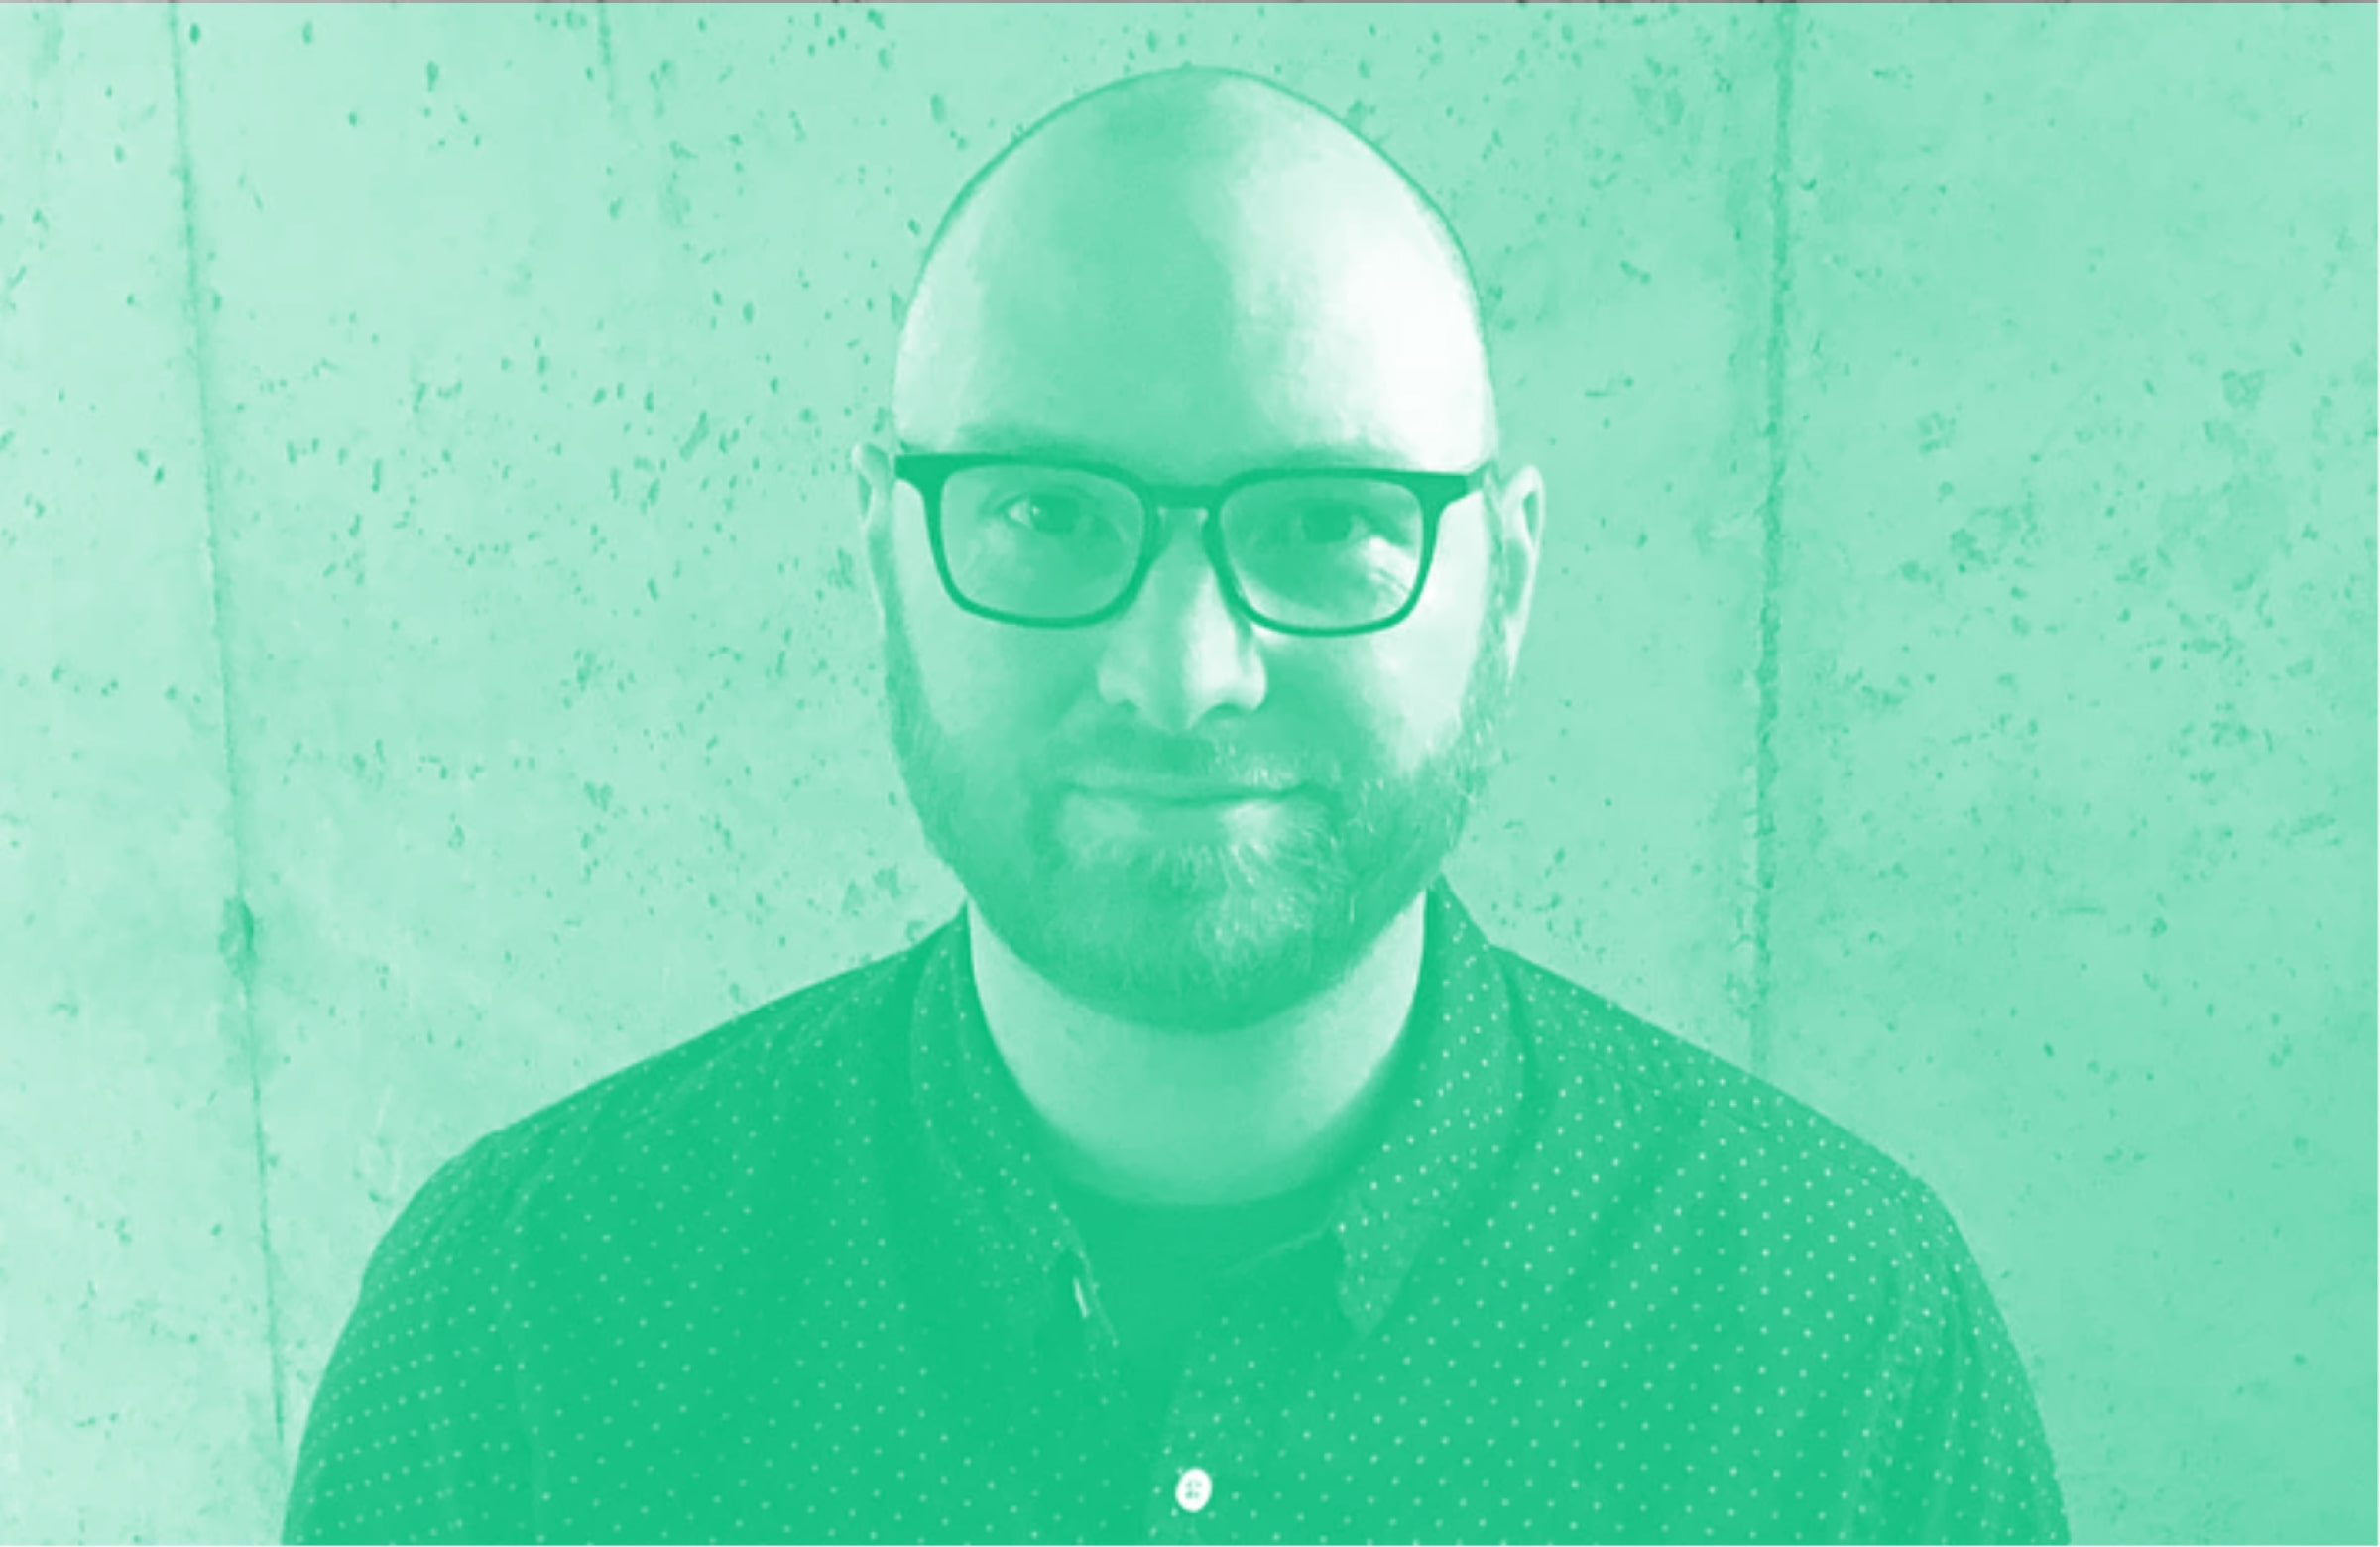 Interview with Ryan Wilson (Director of User Experience @ Bitovi)